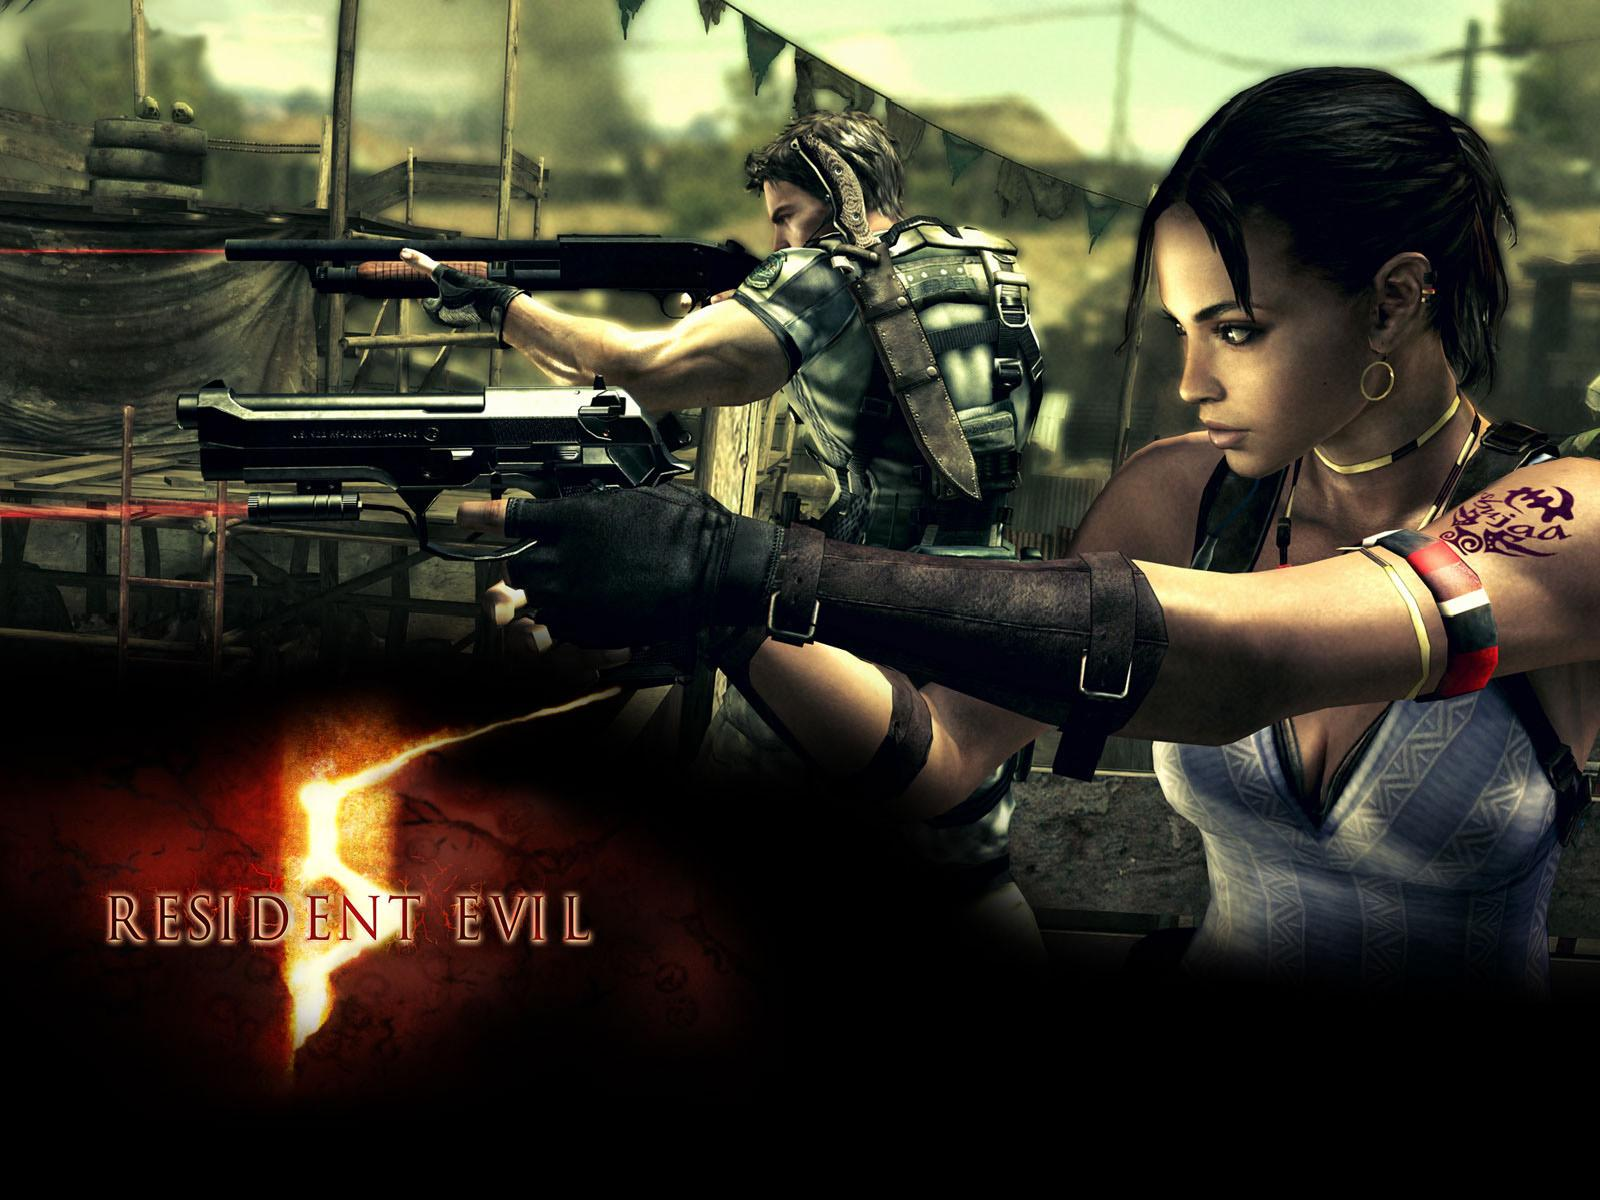 Screenshots from Resident Evil 5 Wallpaper.